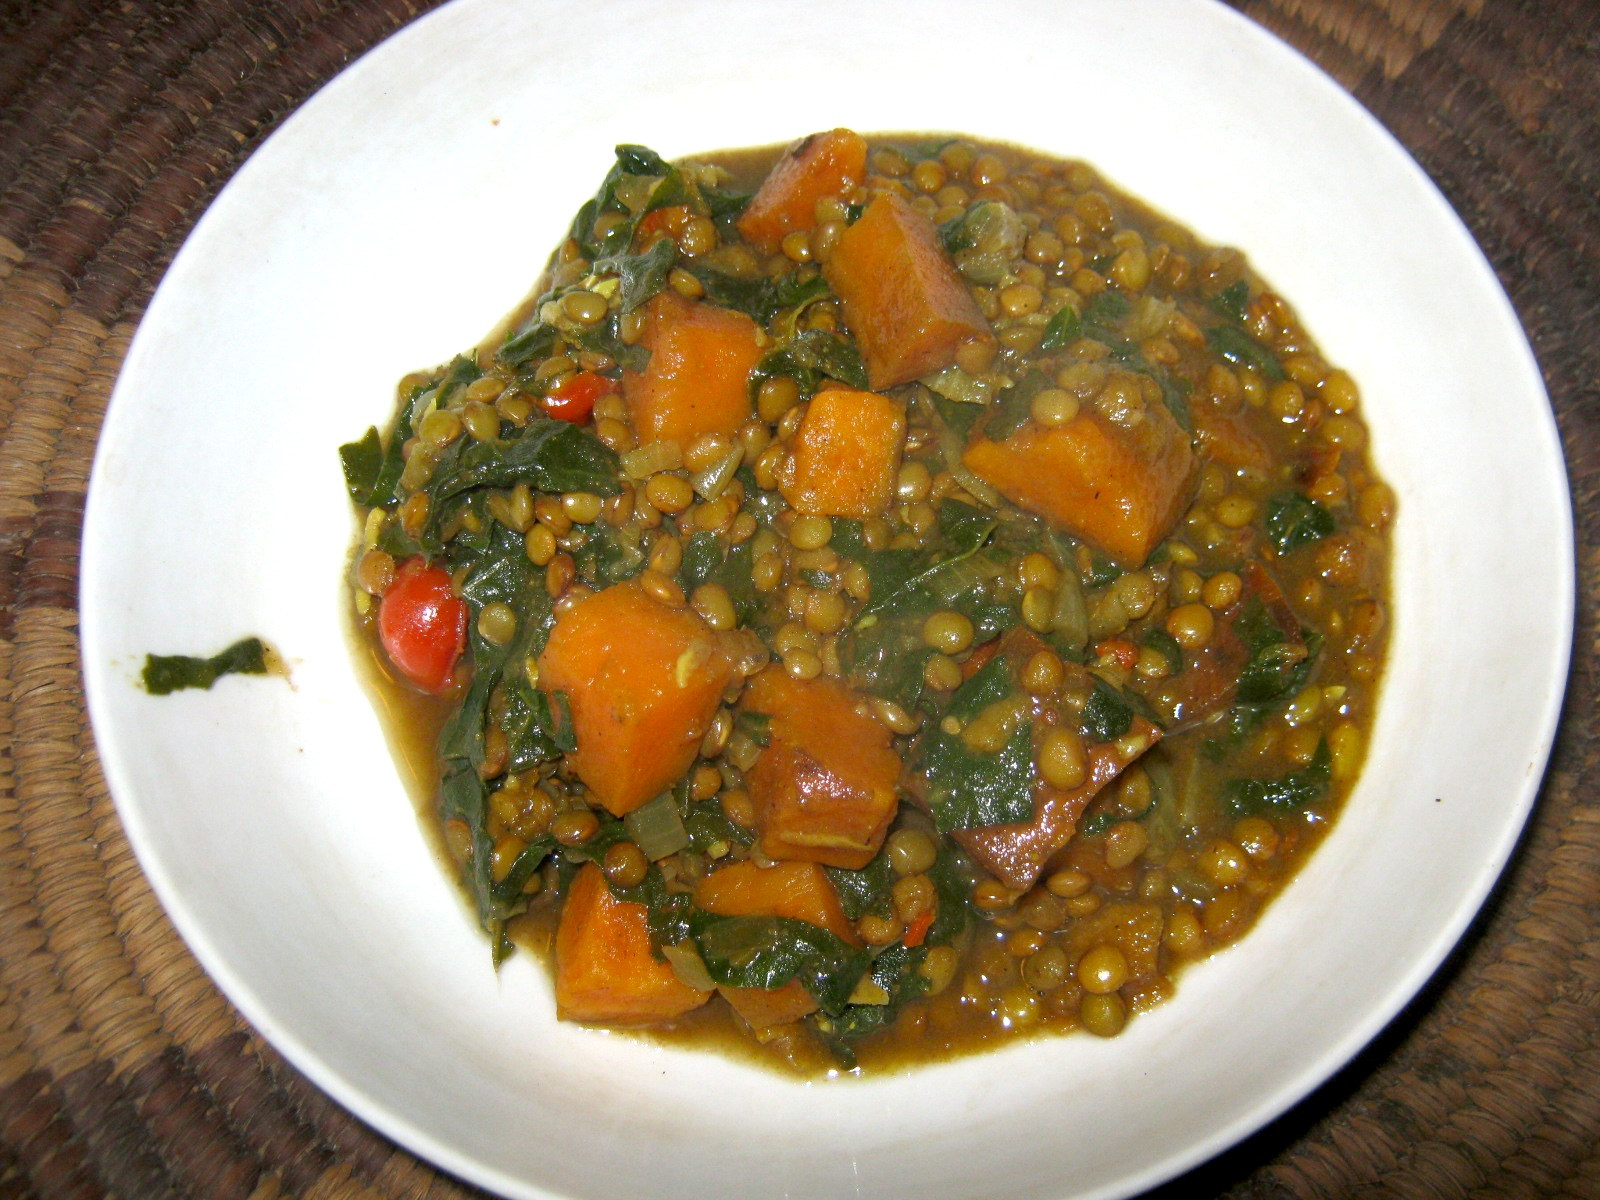 Indian Dhal (lentil stew) with sweet potato and spinach